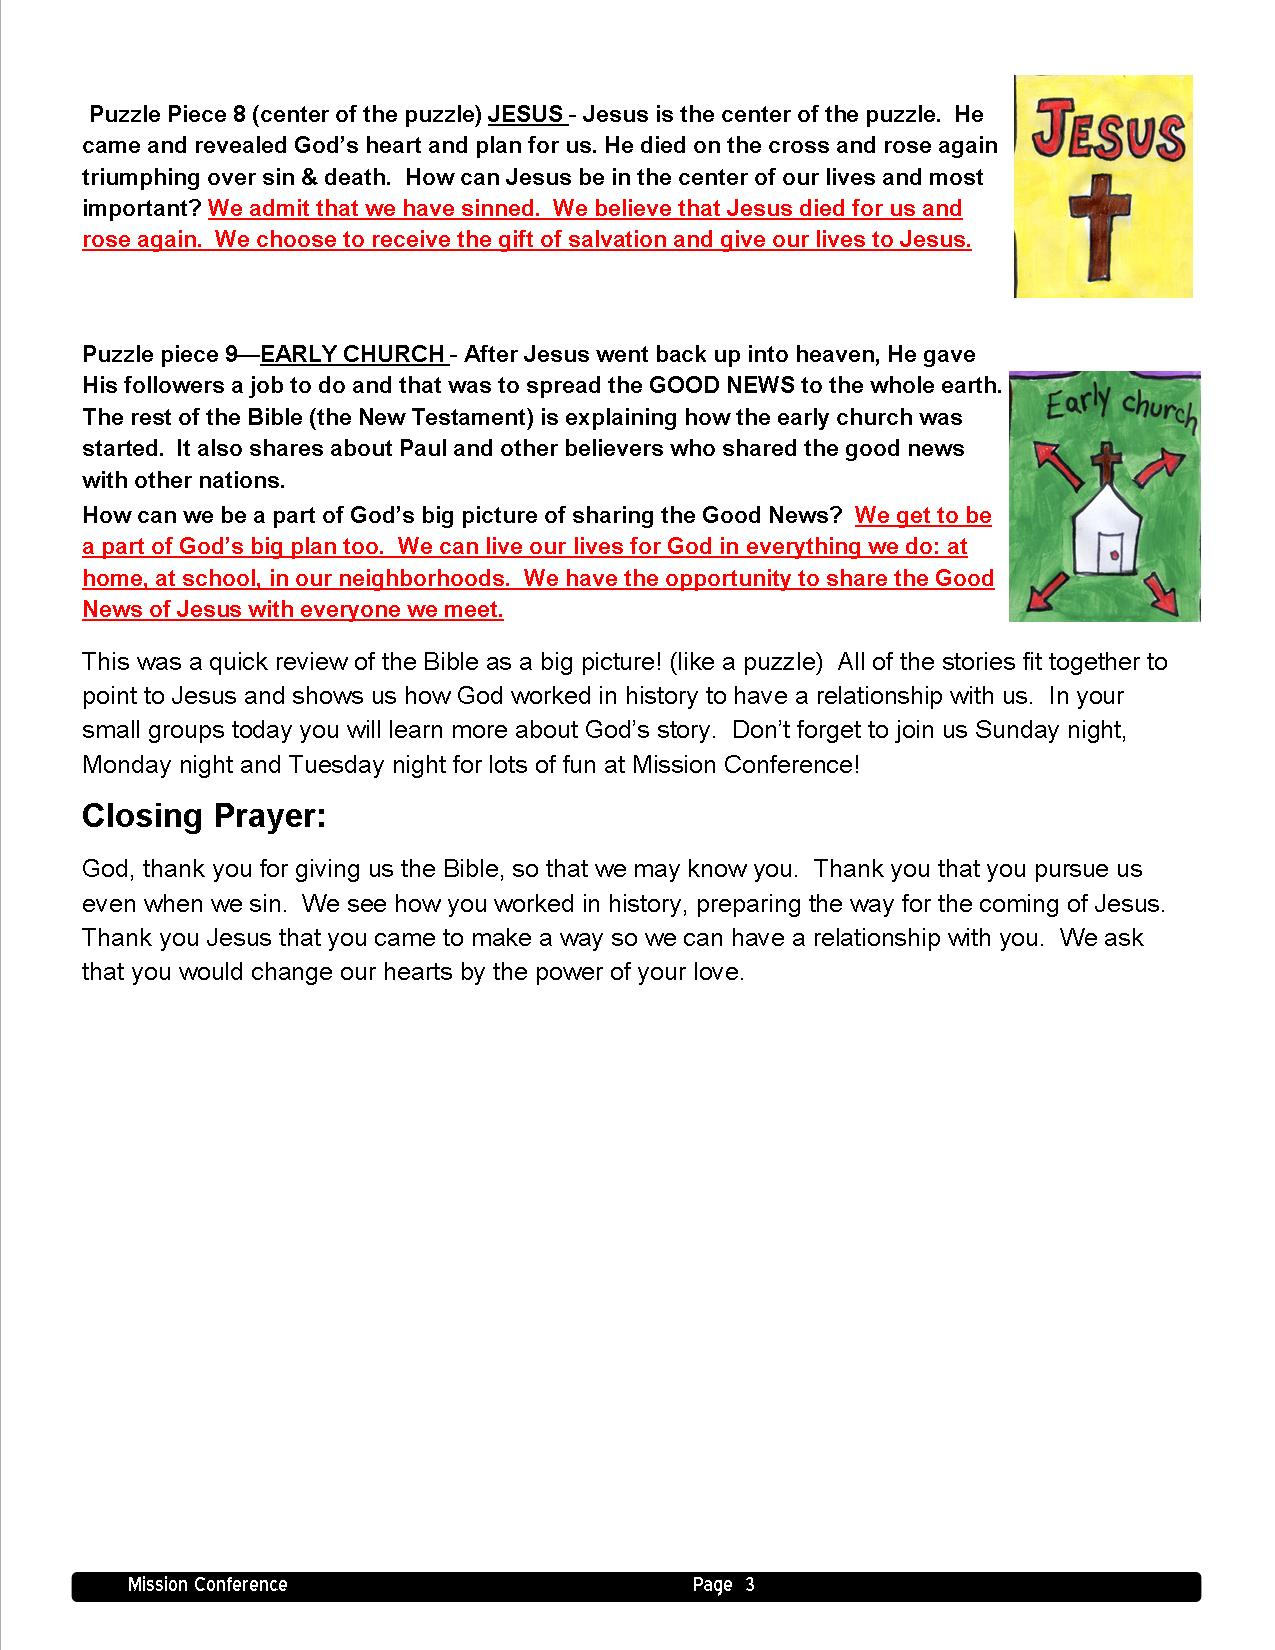 Lead mission conf pg 3